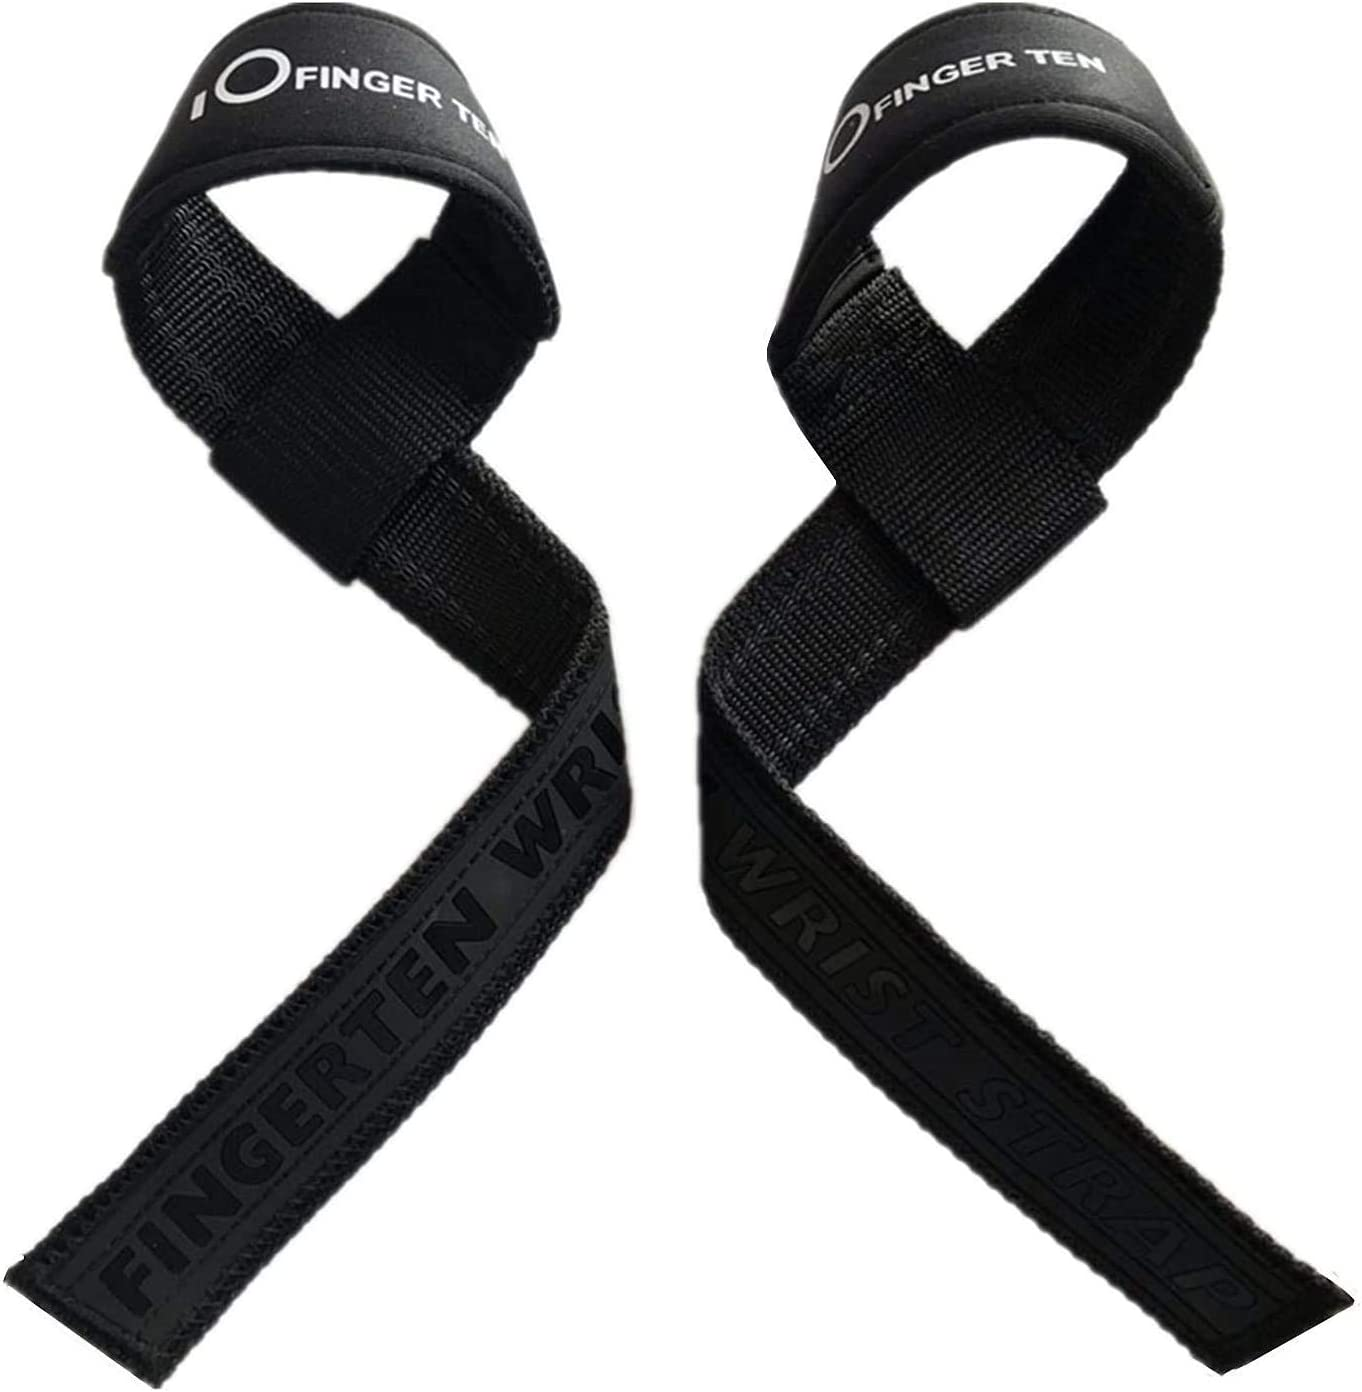 Weight LIfting Straps Wrist Support Adjustable for Men Women Value 1//2 Pair Fitness Body Squad Hand Bar Straps fit for Crossfit Training Exercise Bodybuilding Powerlifting Workout Cofortable Non Slip Grips One Size fits All